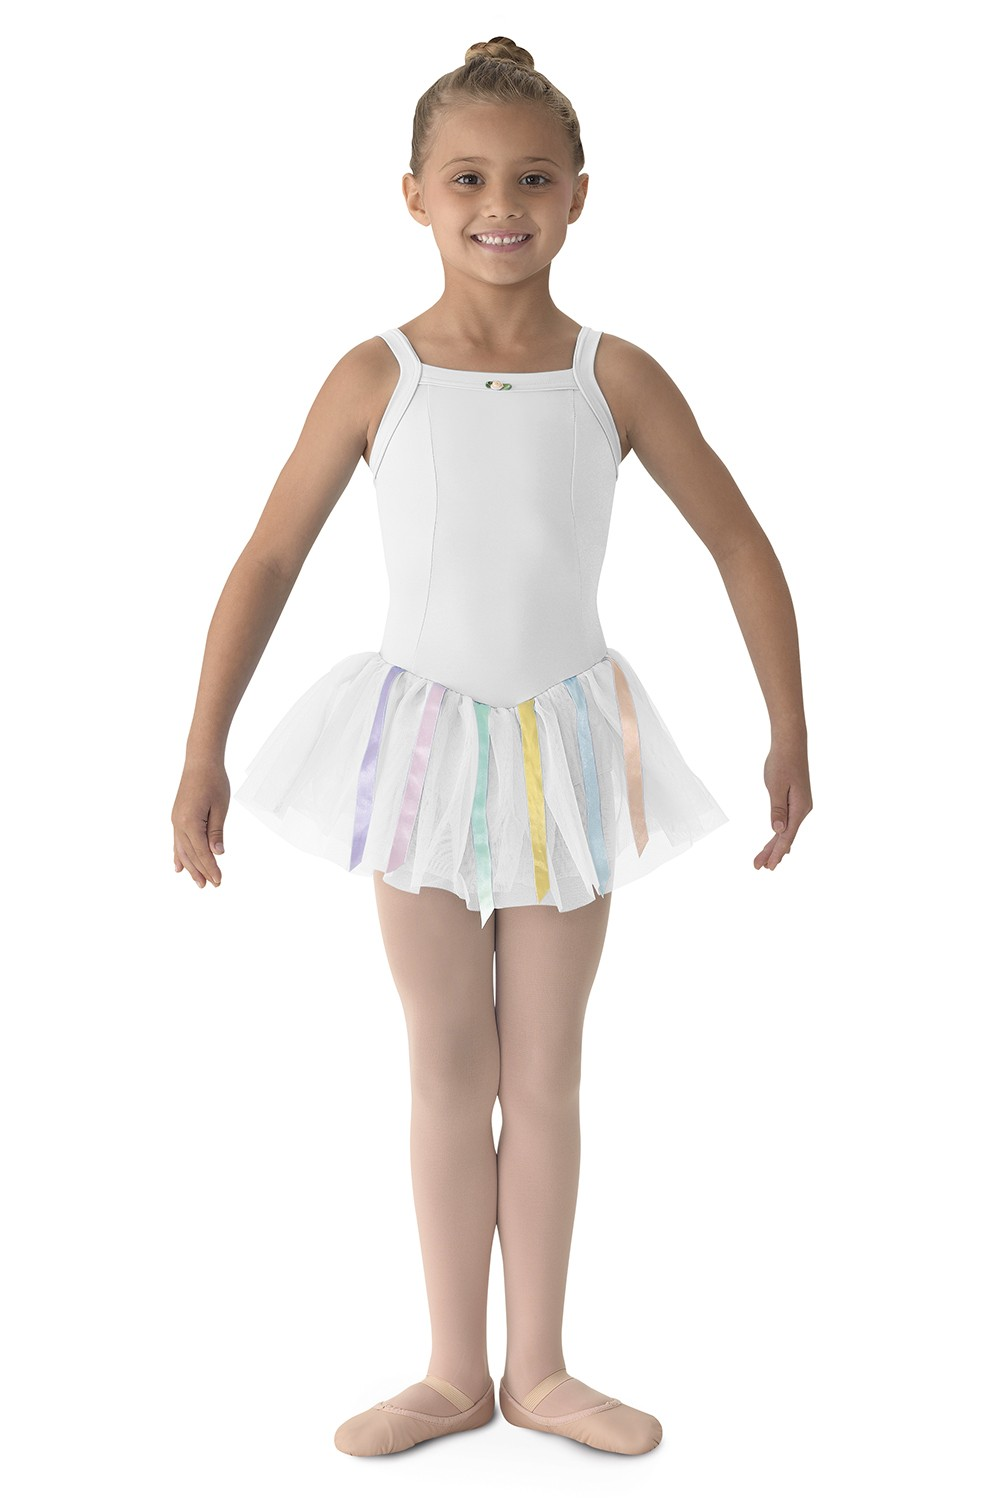 Ribbon Dress Children's Dance Leotards